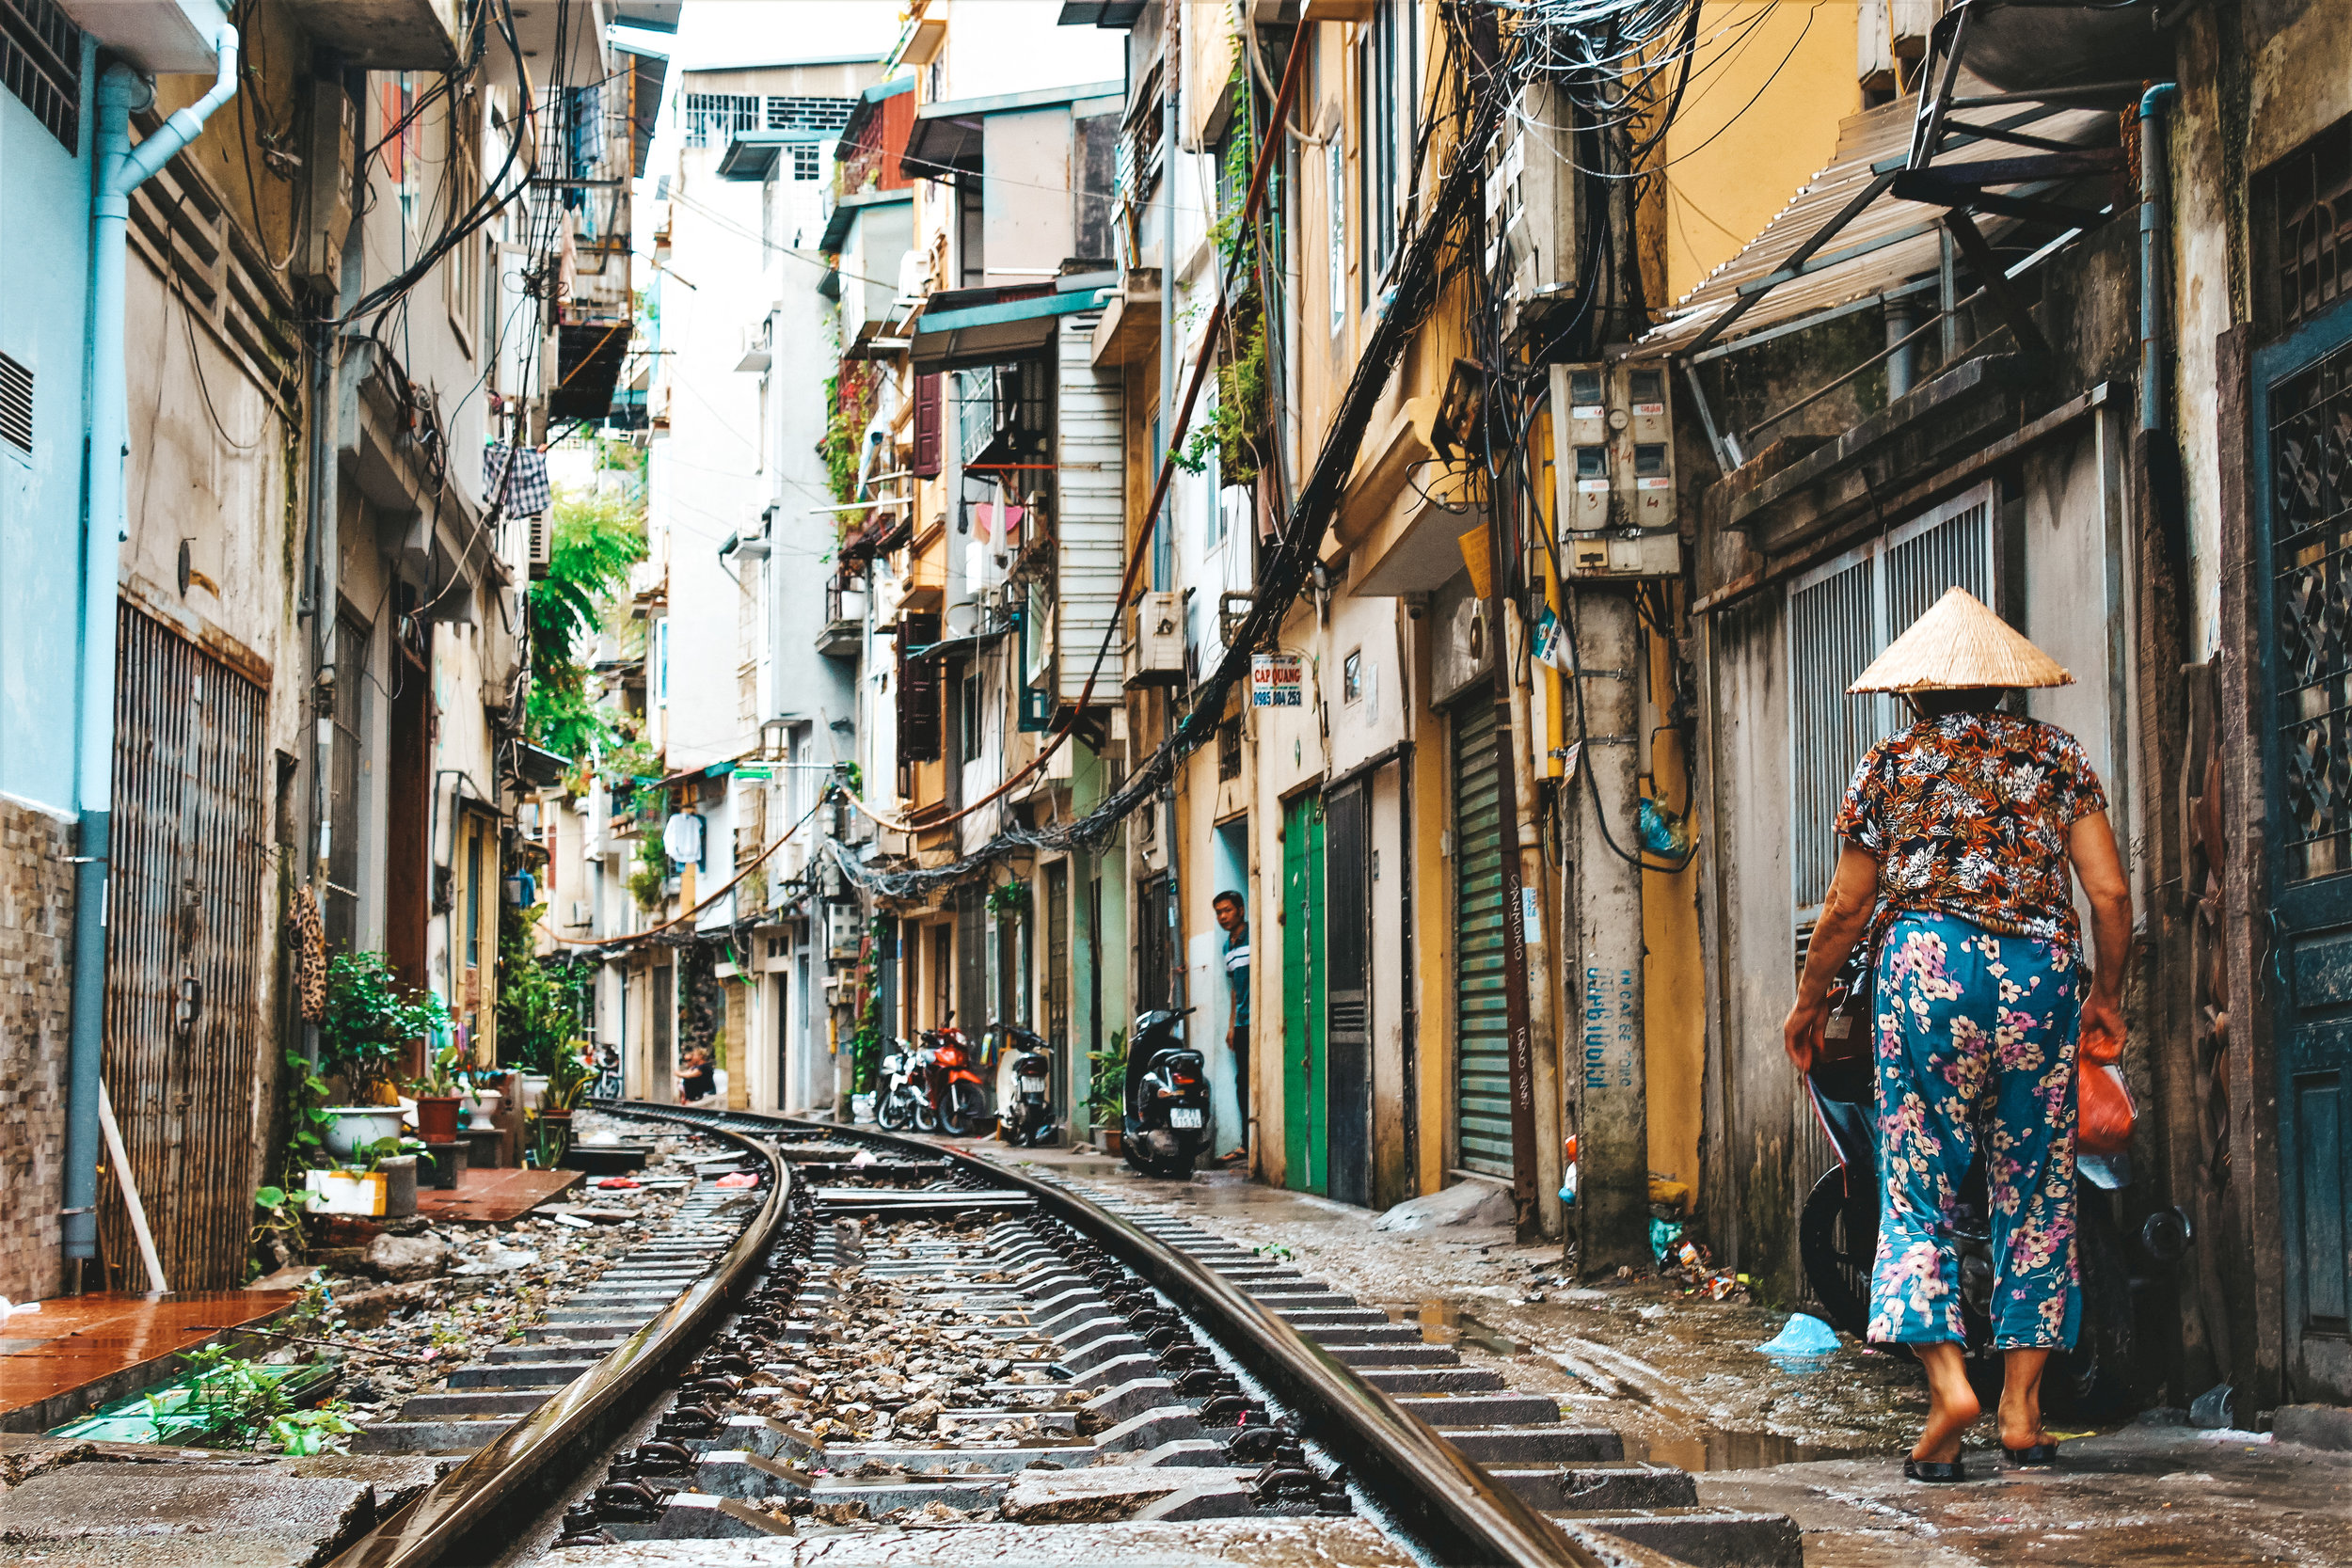 5 OF THE BEST CHEAP PLACES TO TRAVEL INTERNATIONALLY